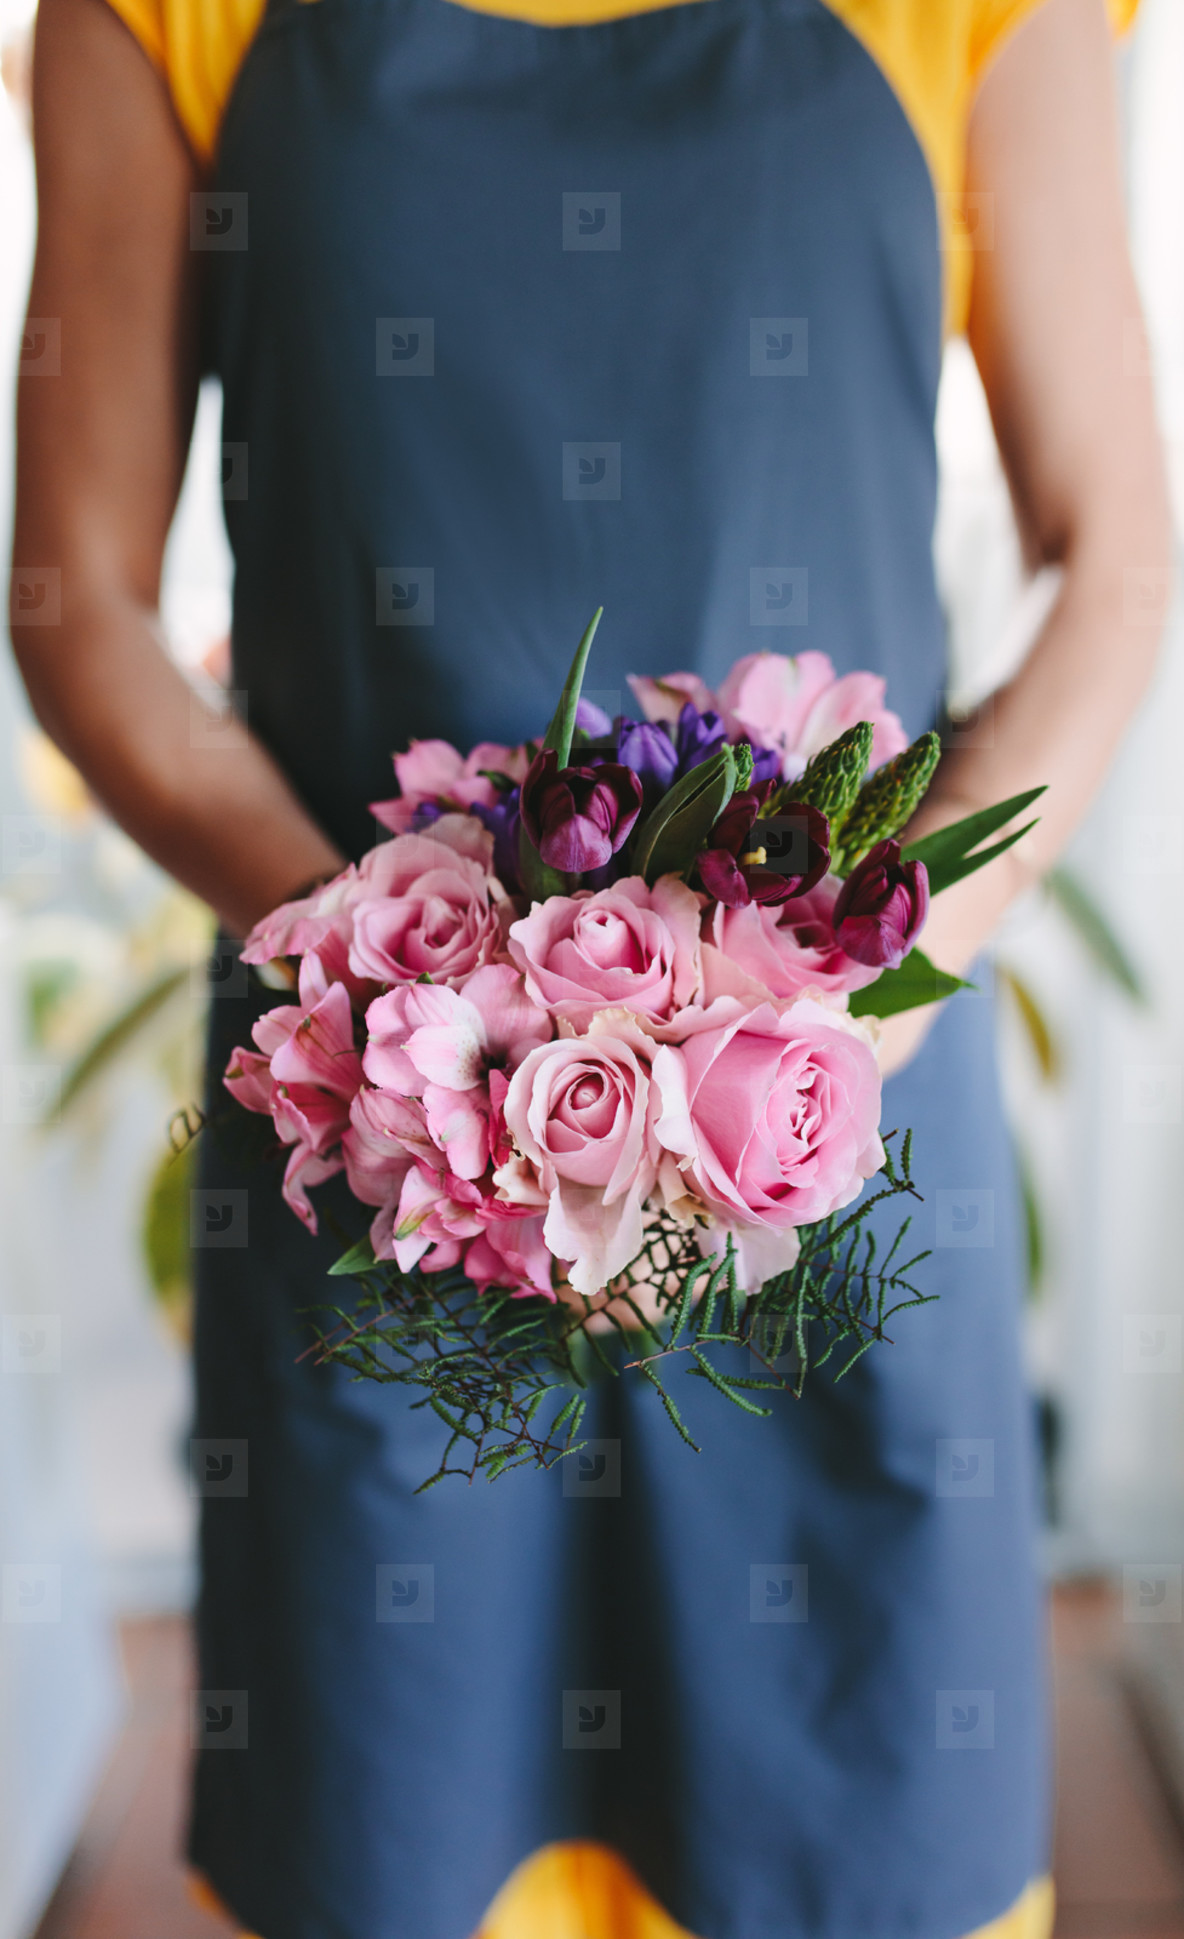 Photos - Female florist holding mixed flower bouquet - YouWorkForThem